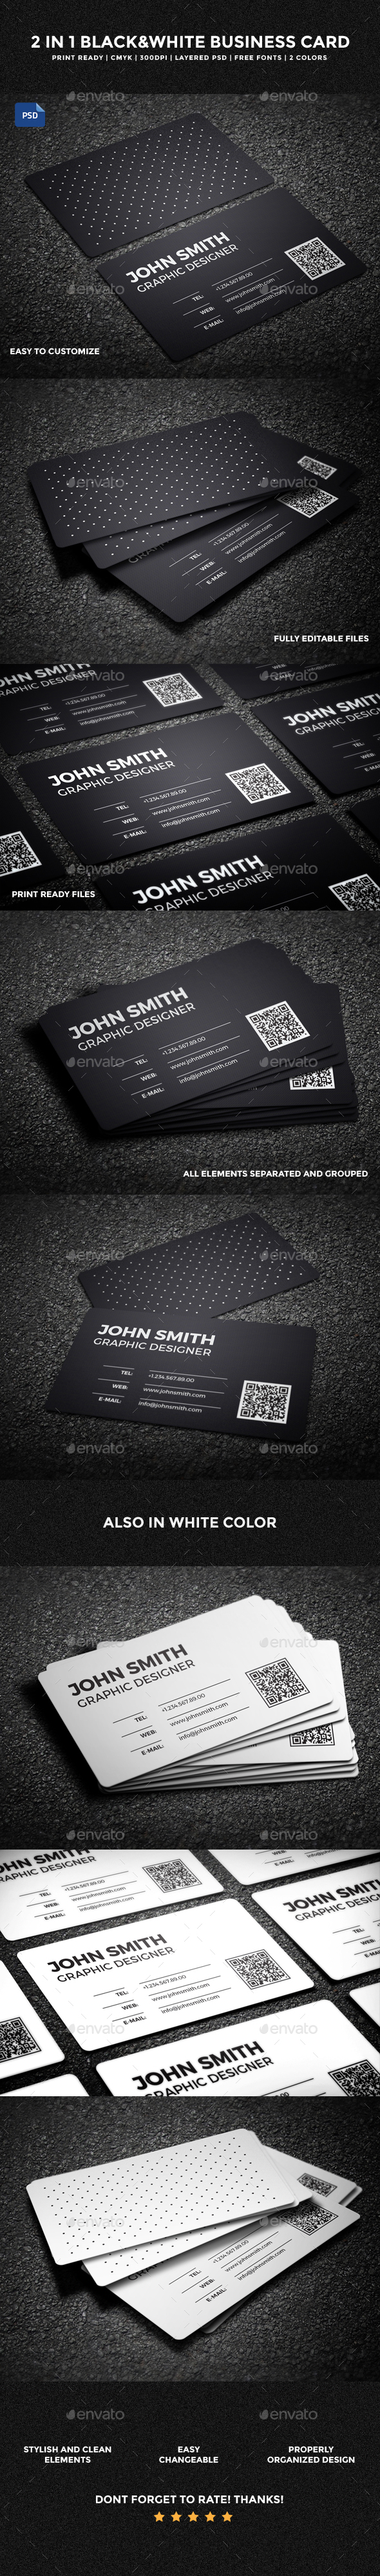 2 in 1 Black & White Business Card - 59 - Creative Business Cards